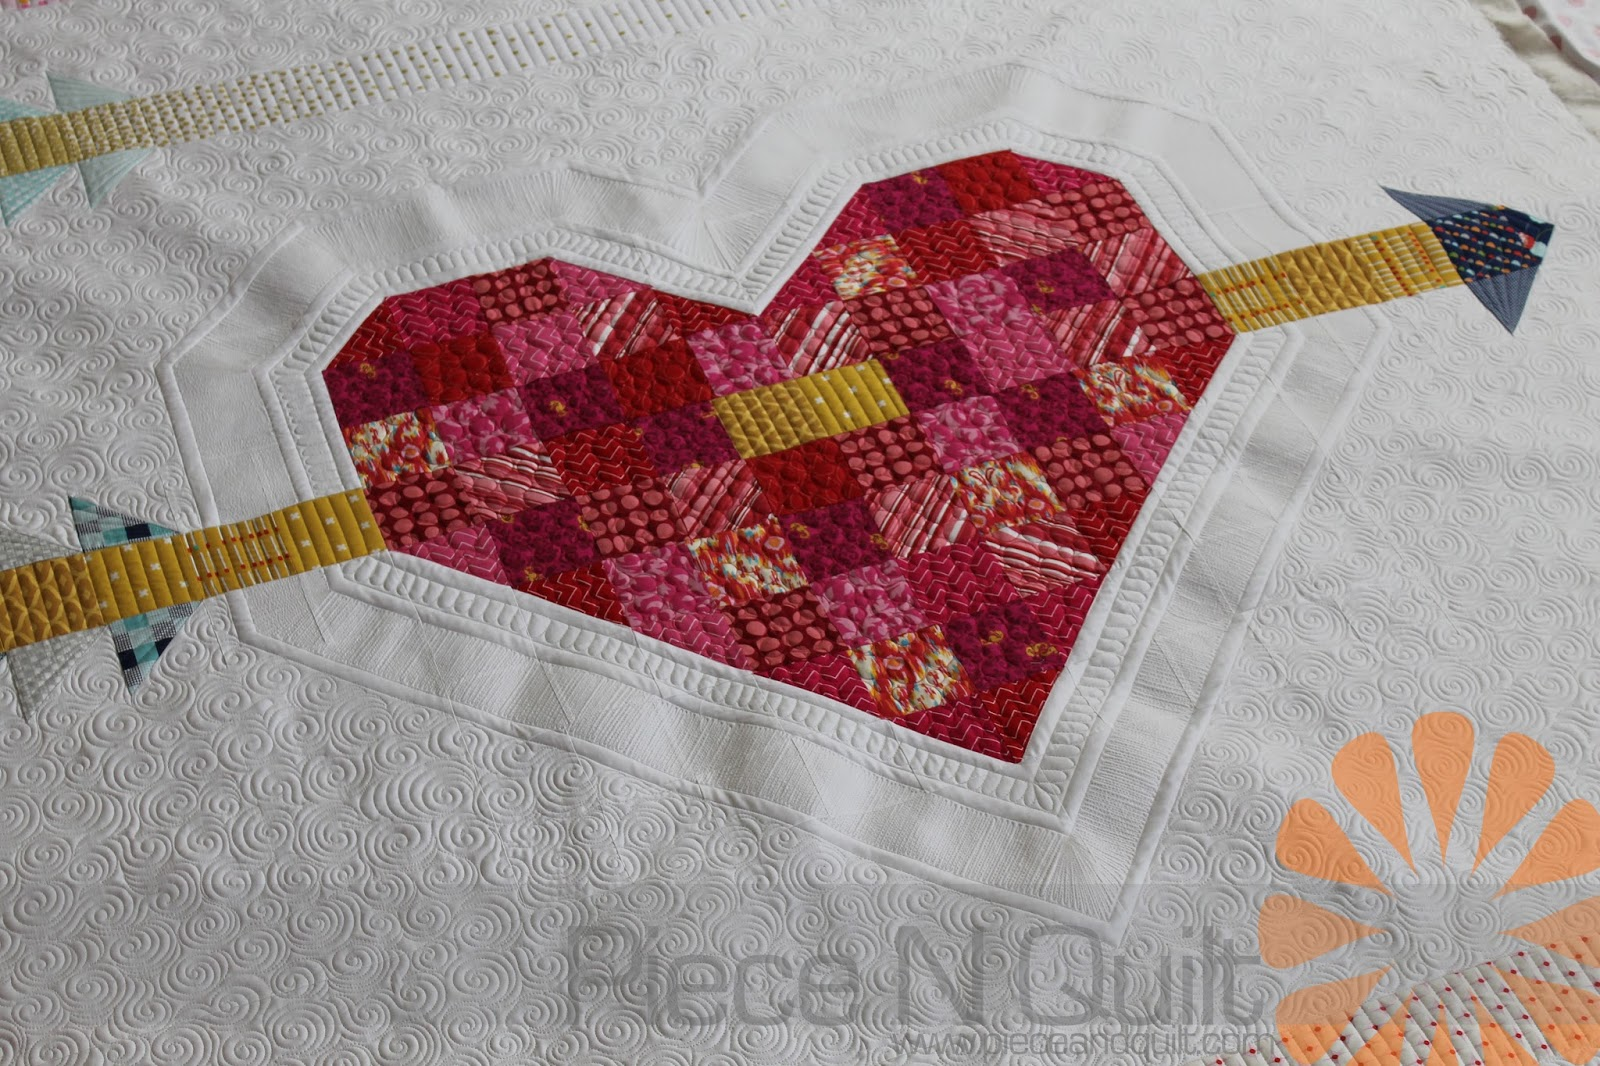 Piece N Quilt Cupids Arrow Custom Machine Quilting By Natalia Bonner